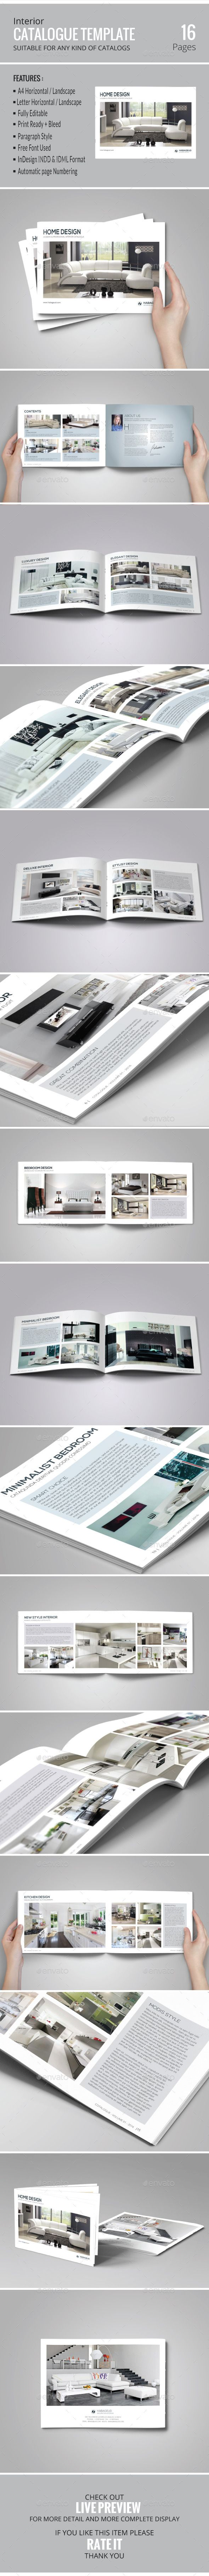 Catalog Template Vol. 04  http://graphicriver.net/item/catalog-template-vol-04/8976868?WT.ac=portfolio&WT.z_author=habageud